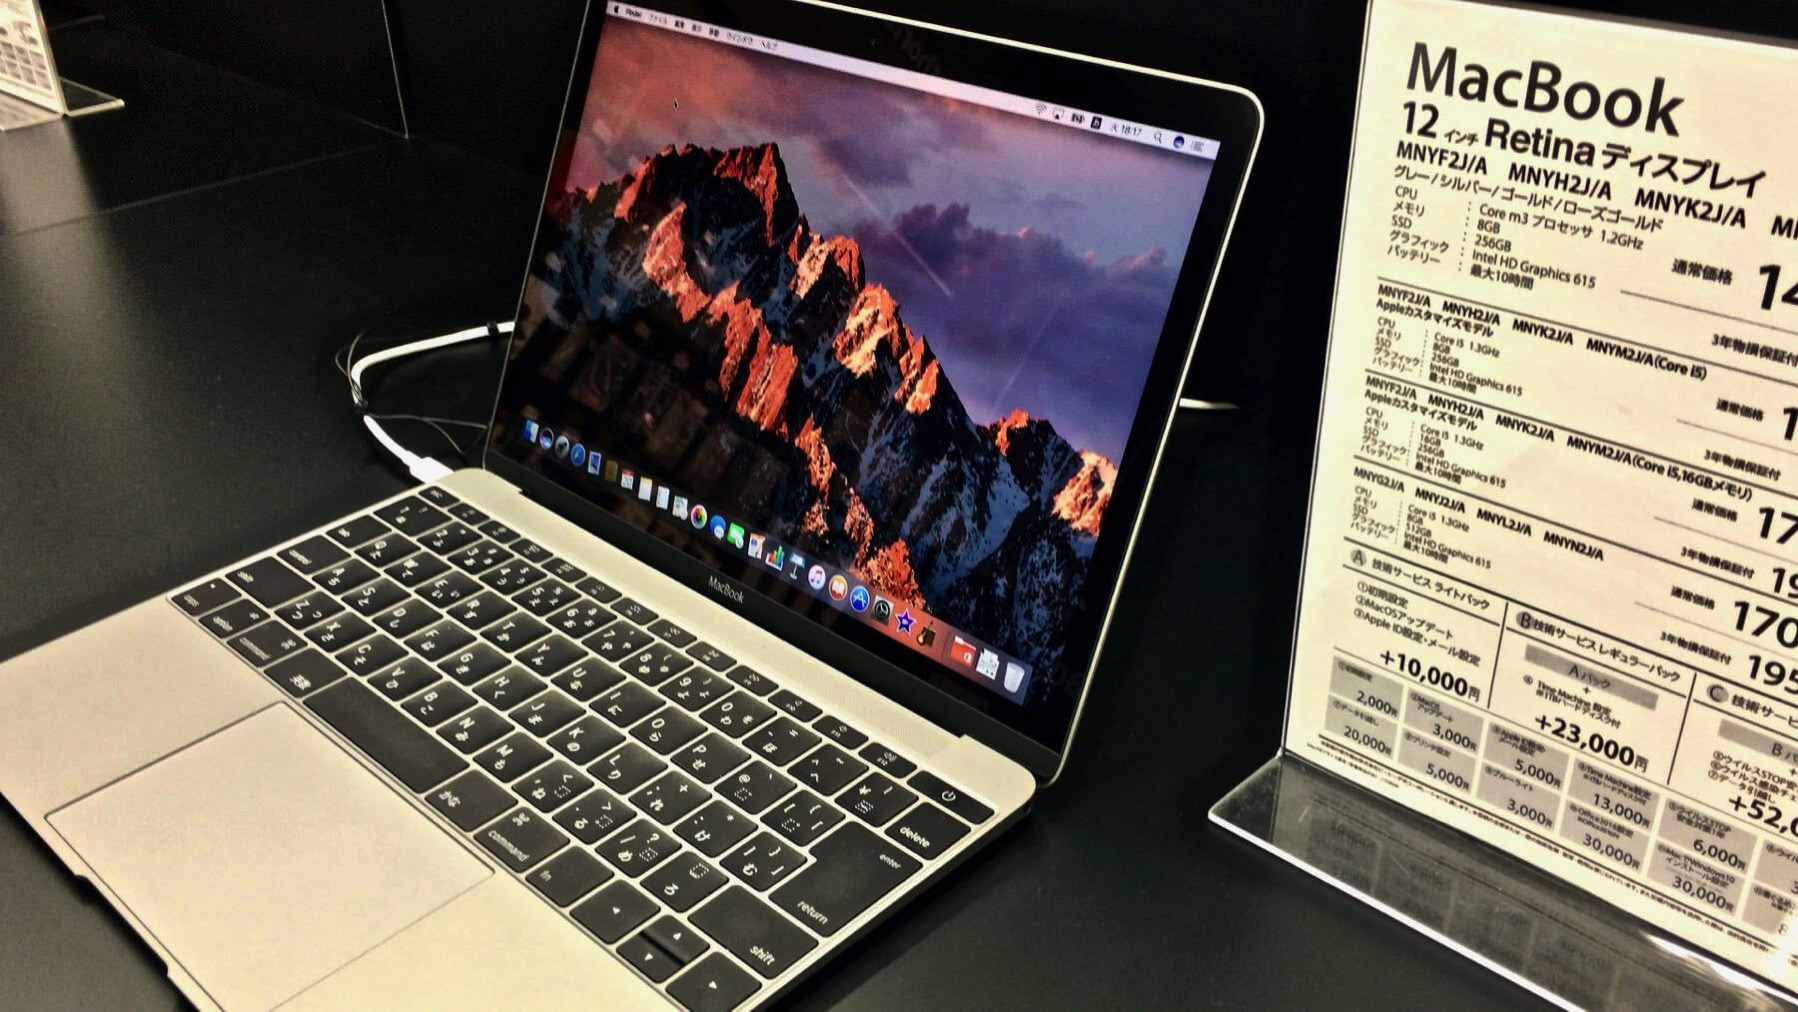 07 MacBook 12inch 2017